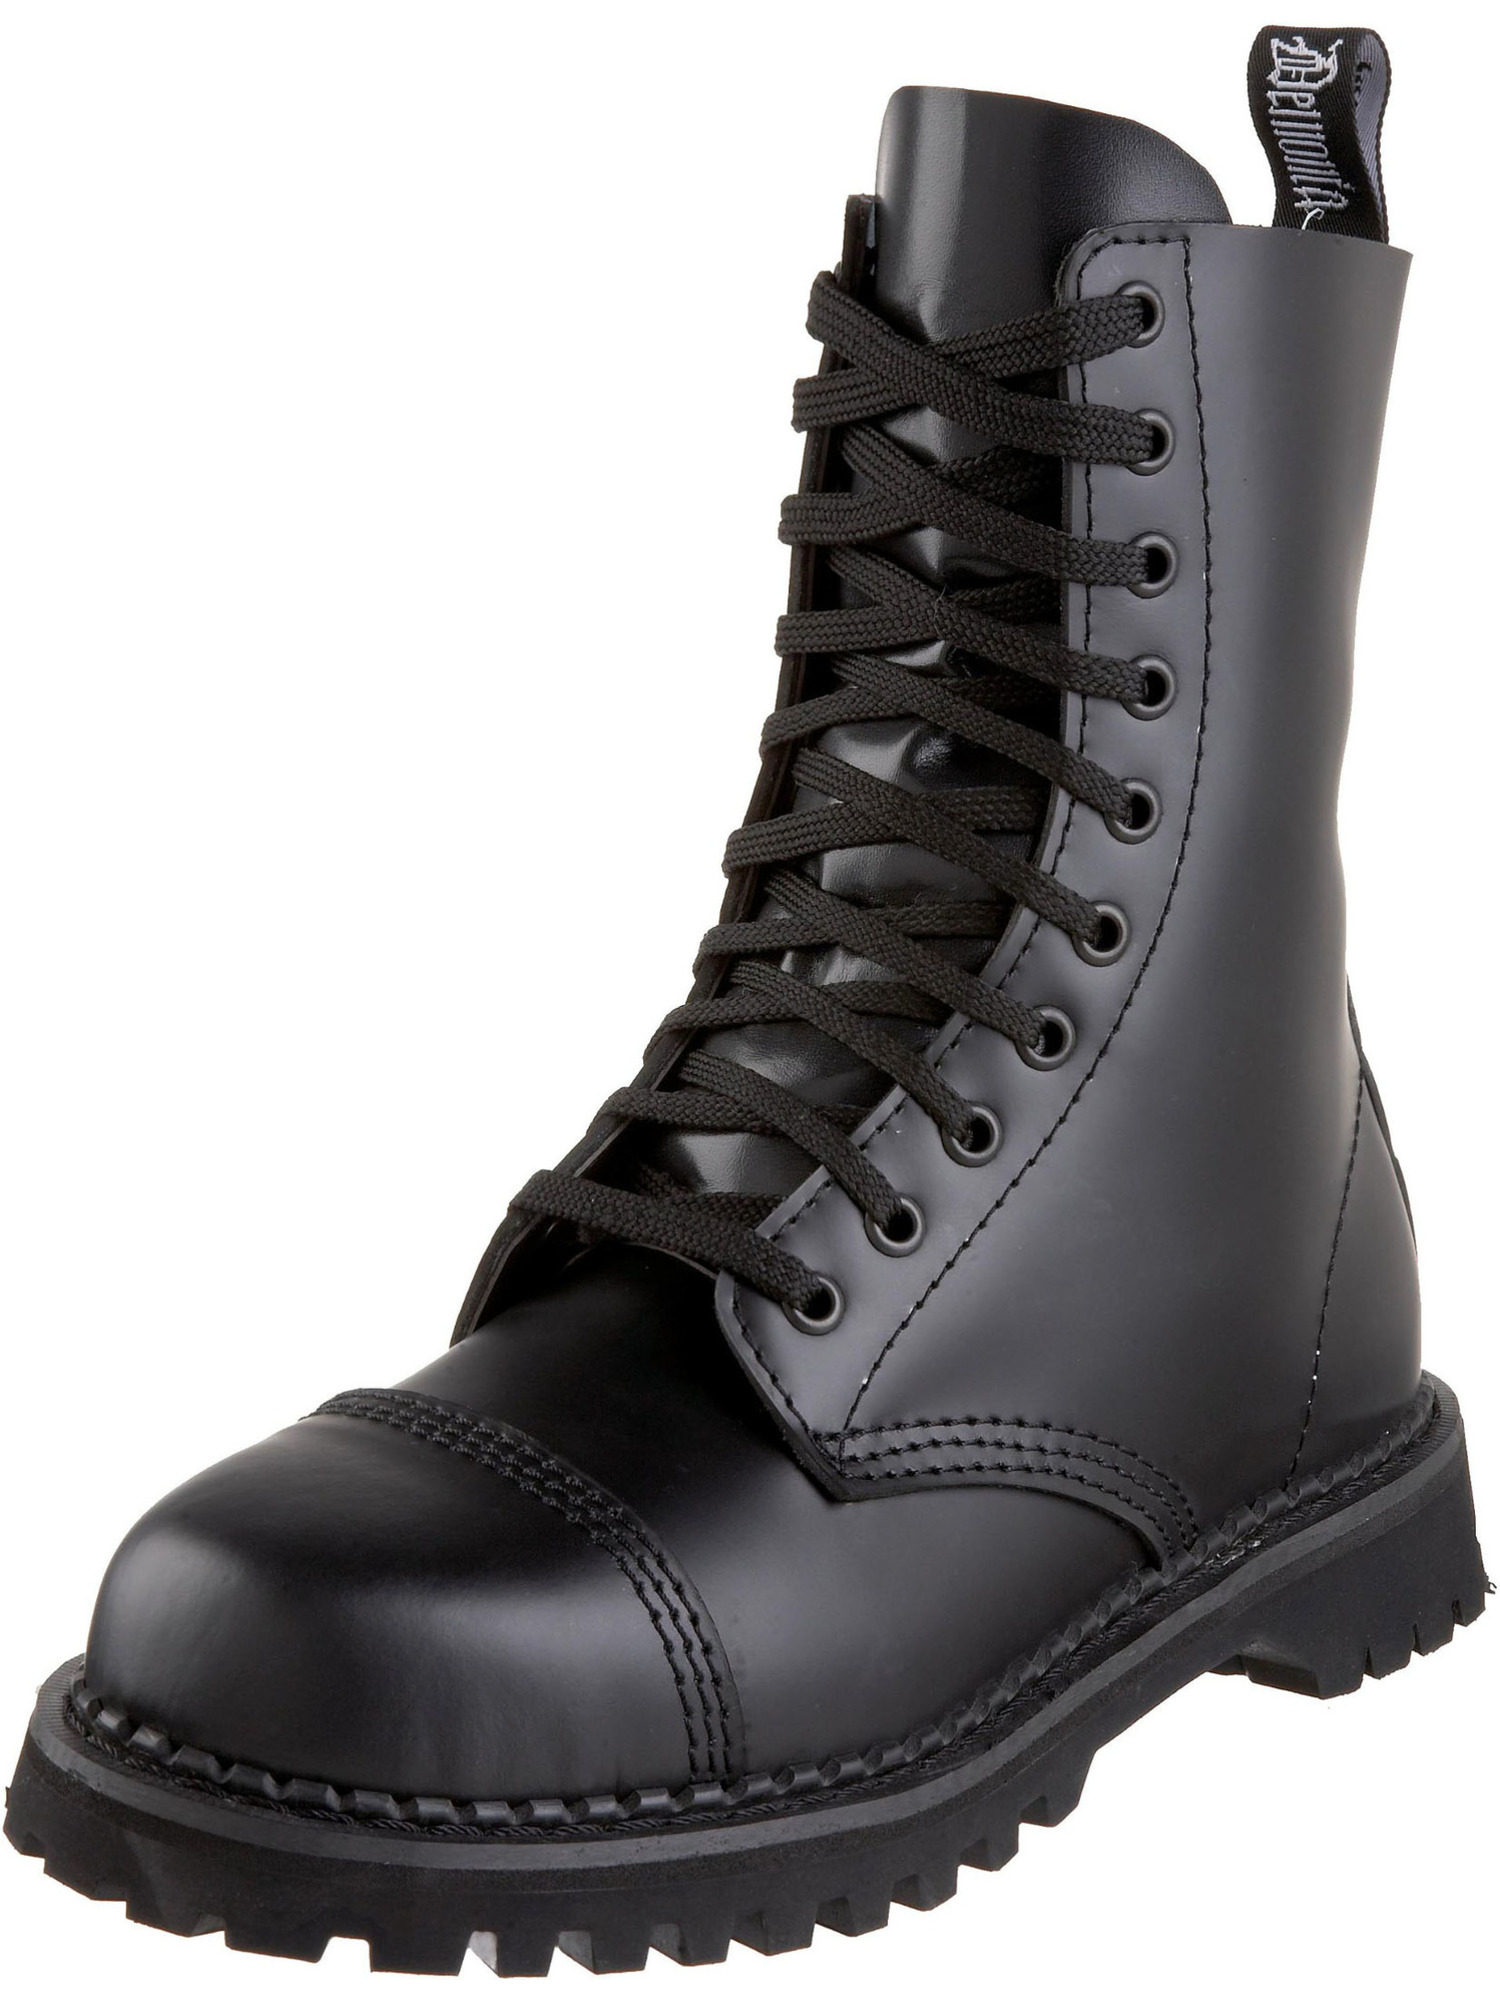 MENS SIZING Low Heel Black Leather Calf Boots 10 eyelet Lace up Steel Toe